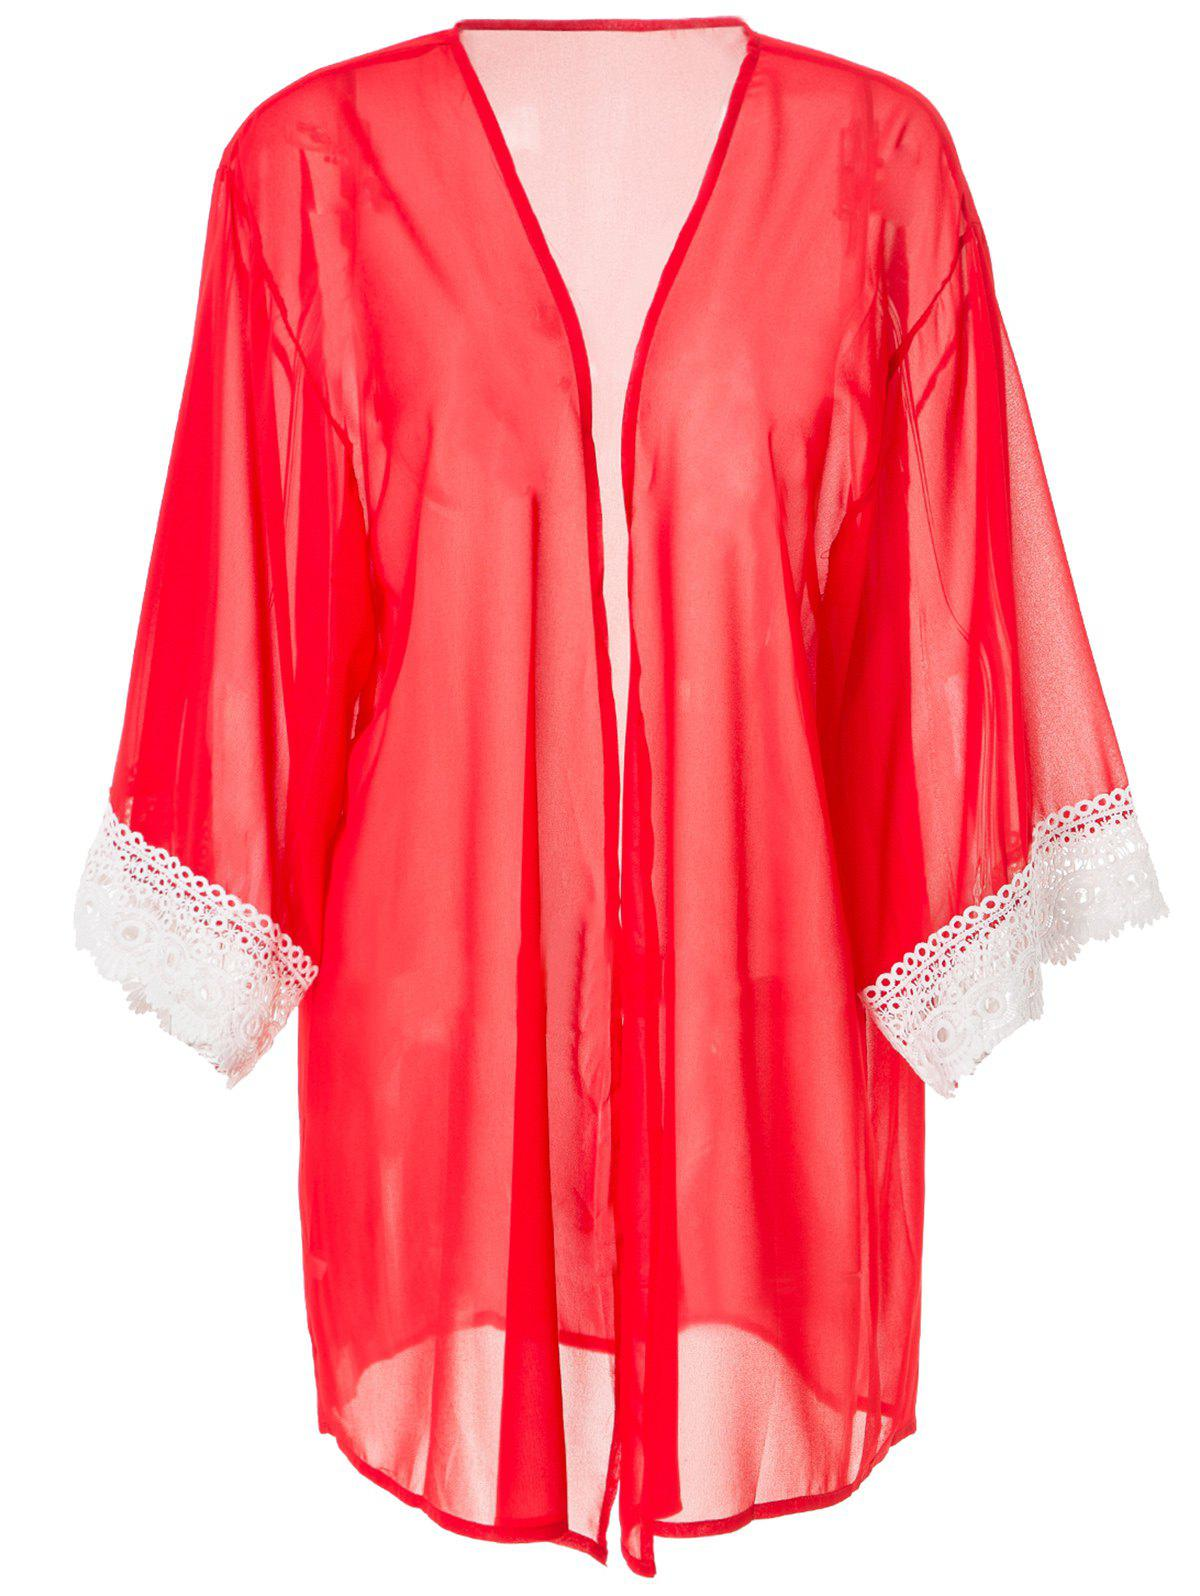 Stylish Collarless 3/4 Sleeve Laciness Loose-Fitting Women's Kimono Blouse - RED S